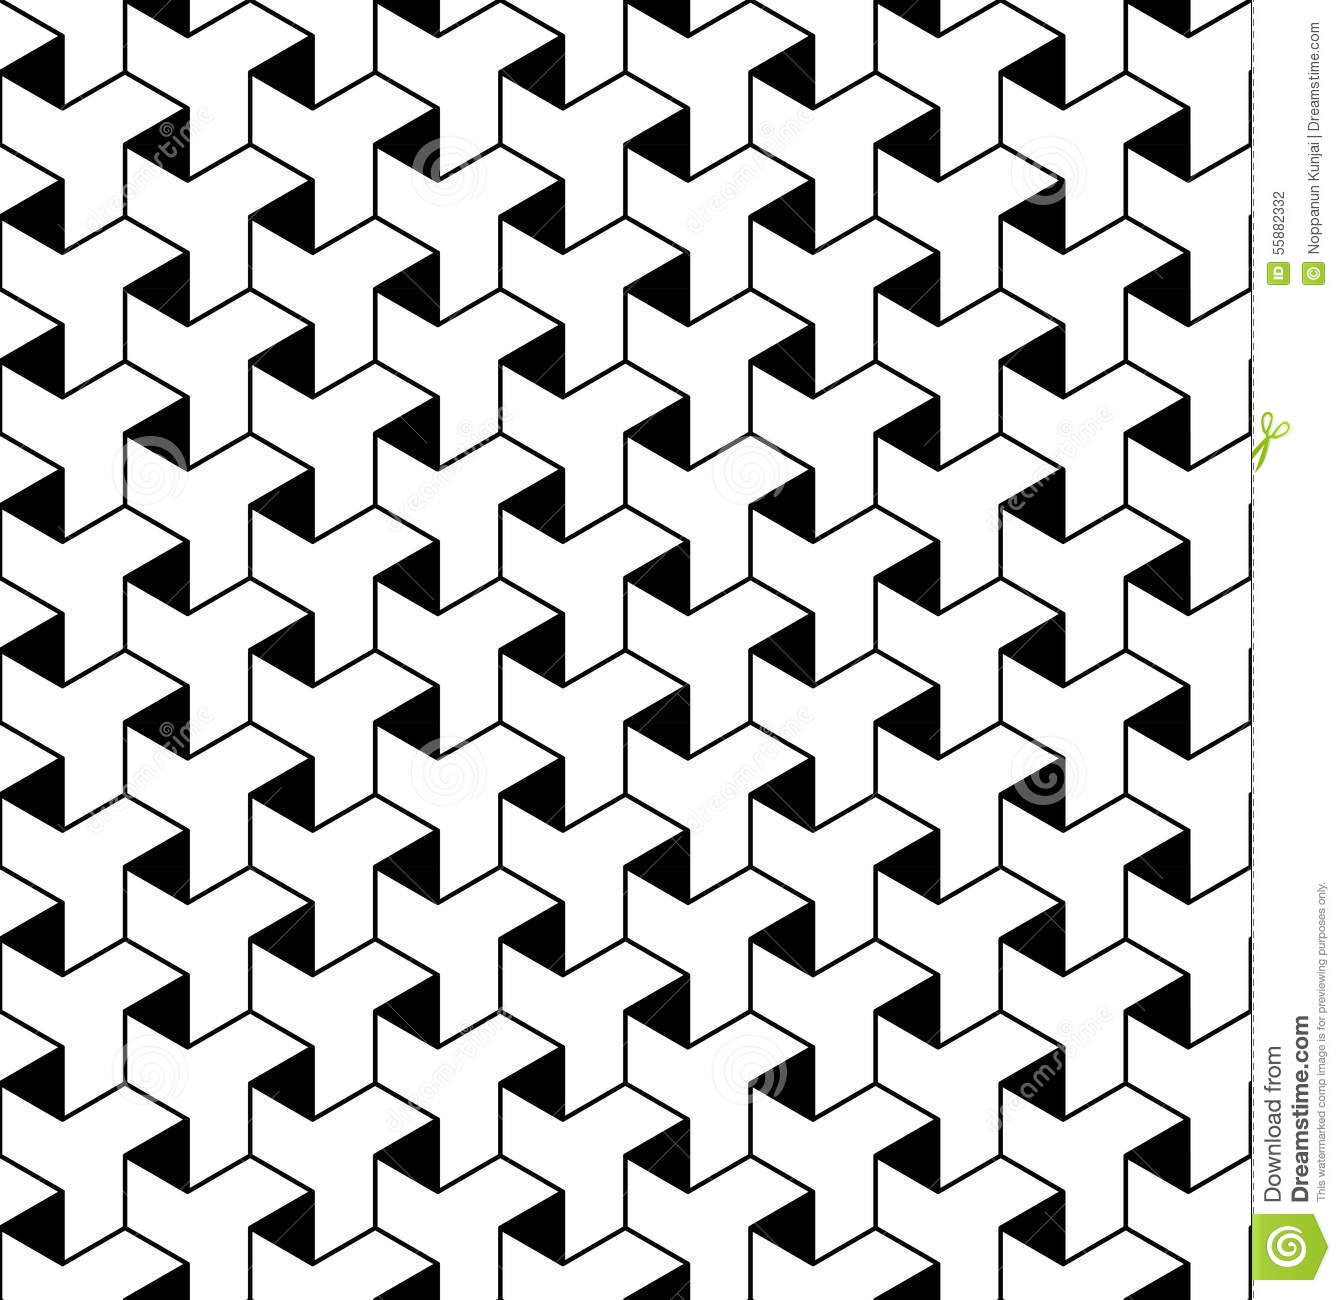 Disegni Geometrici Bianco E Nero black and white geometric seamless pattern with line and